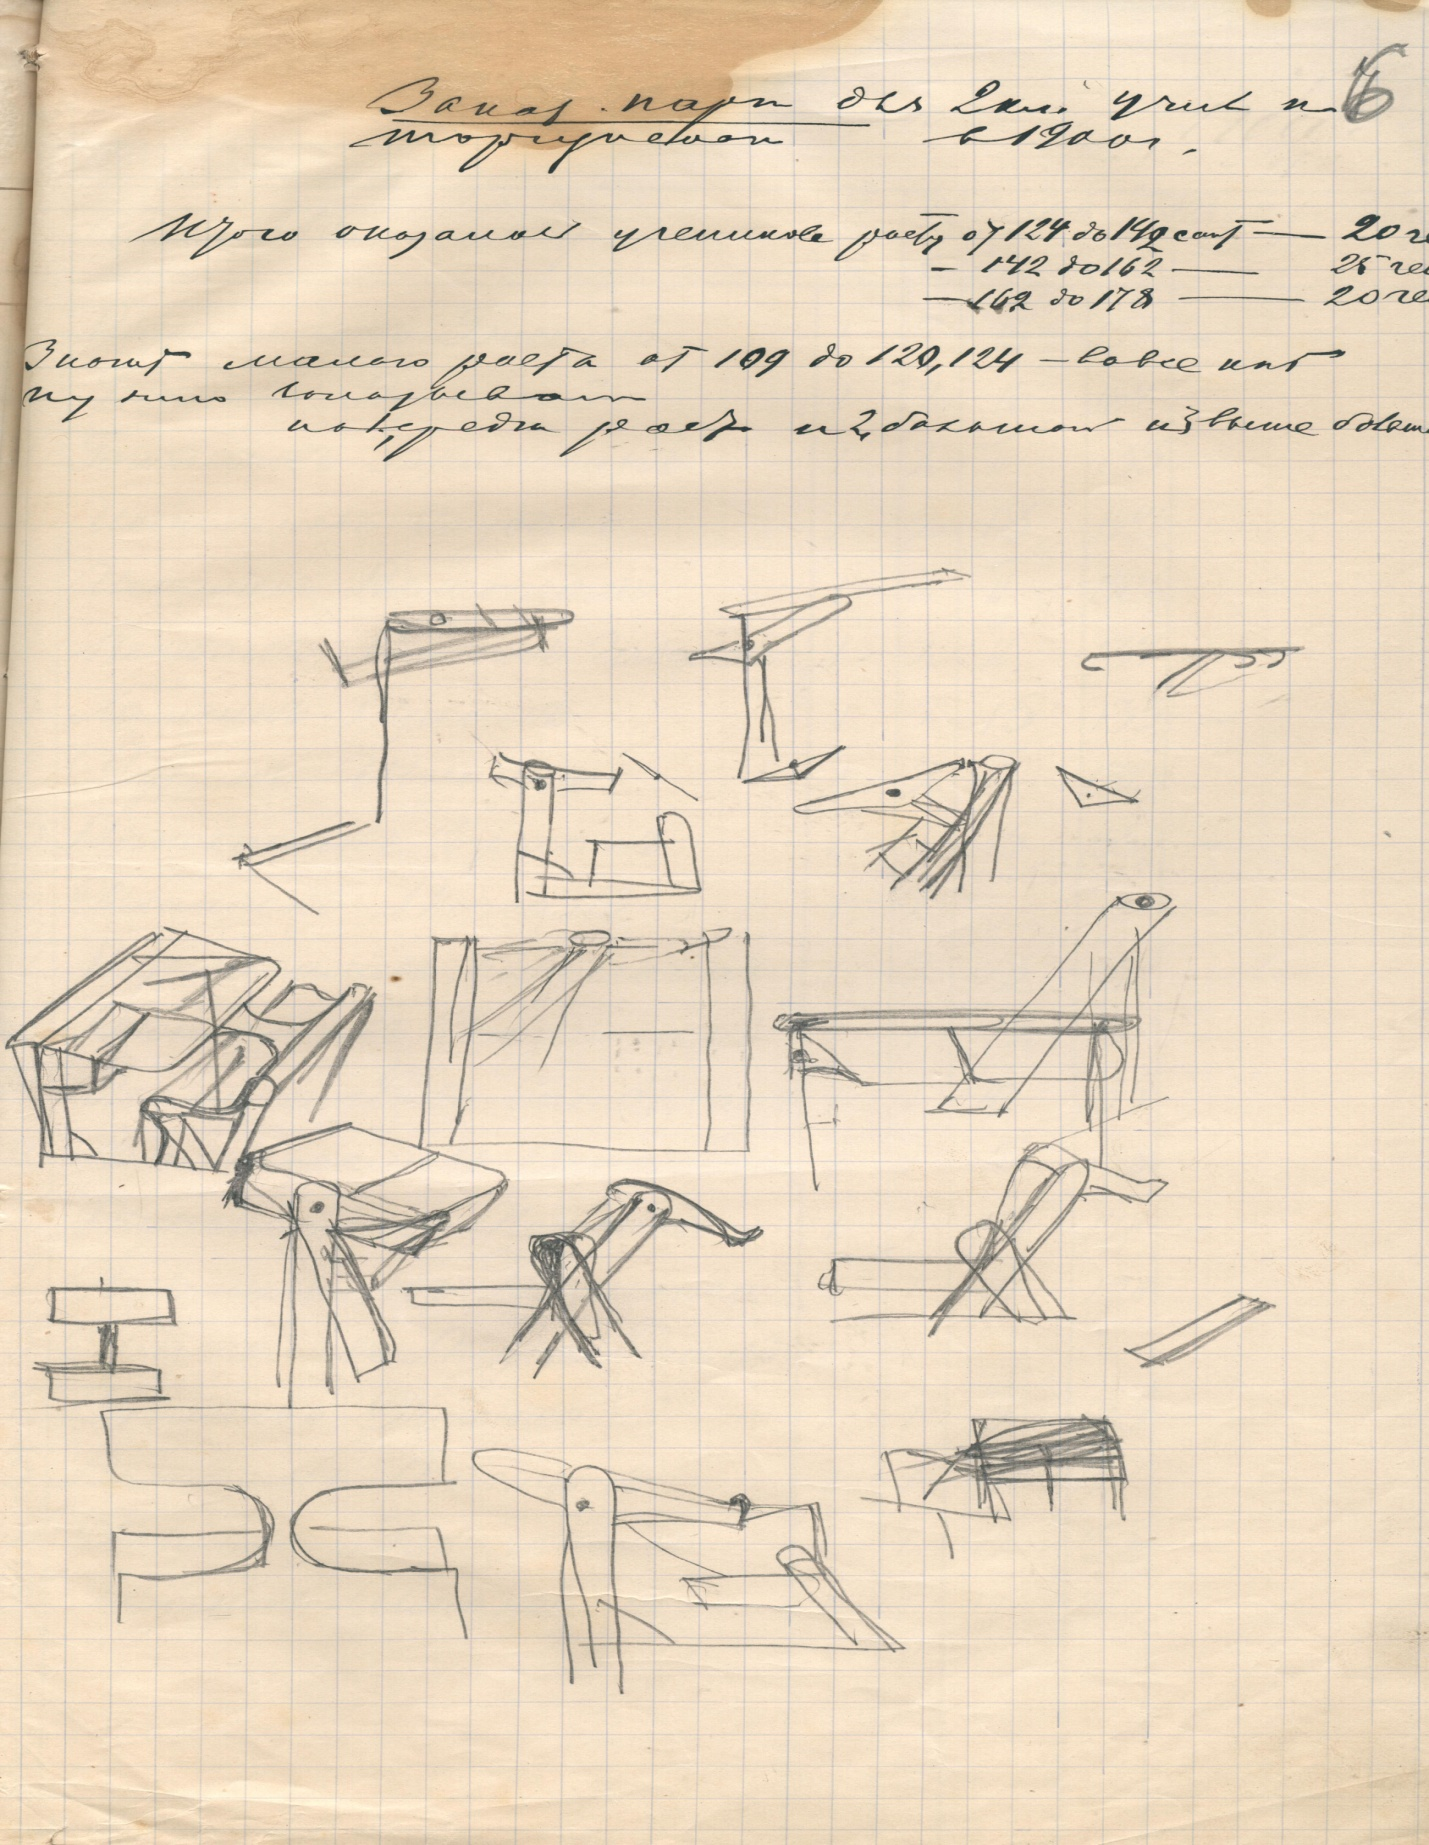 Sketches and drawings of school desks for schools and national colleges